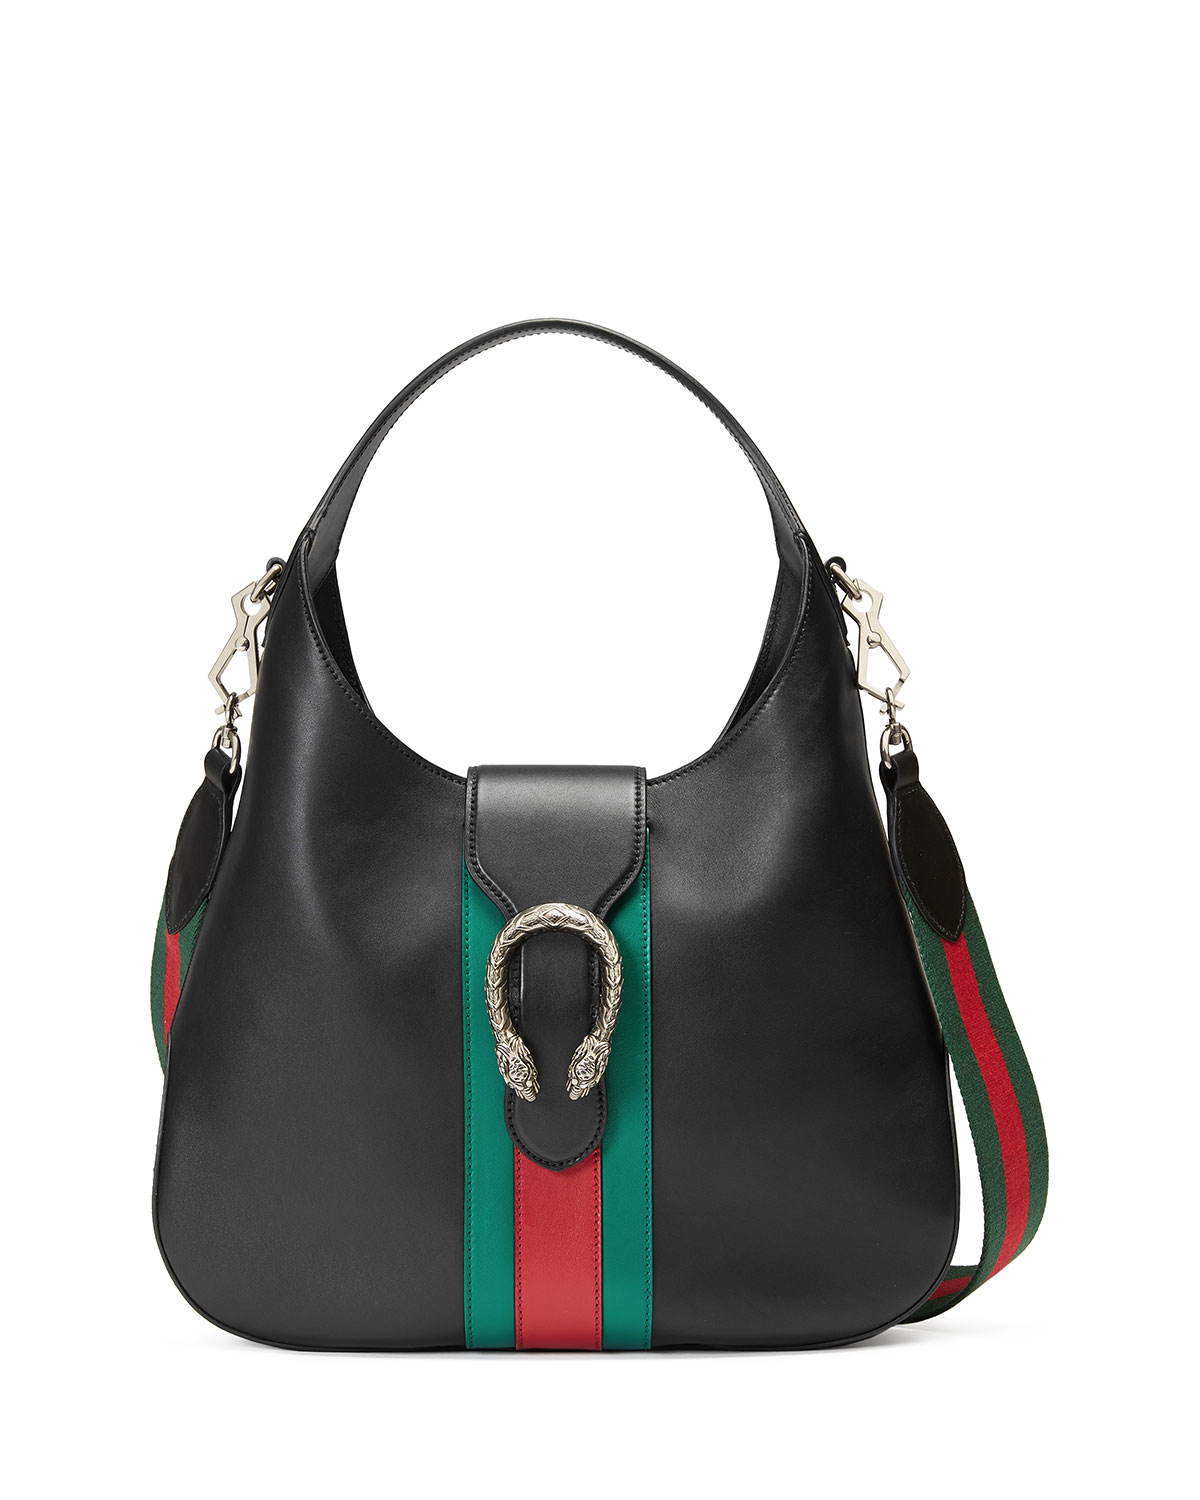 206dfc578395da Gucci Dionysus Medium Web-Stripe Hobo Bag, Black | Neiman Marcus